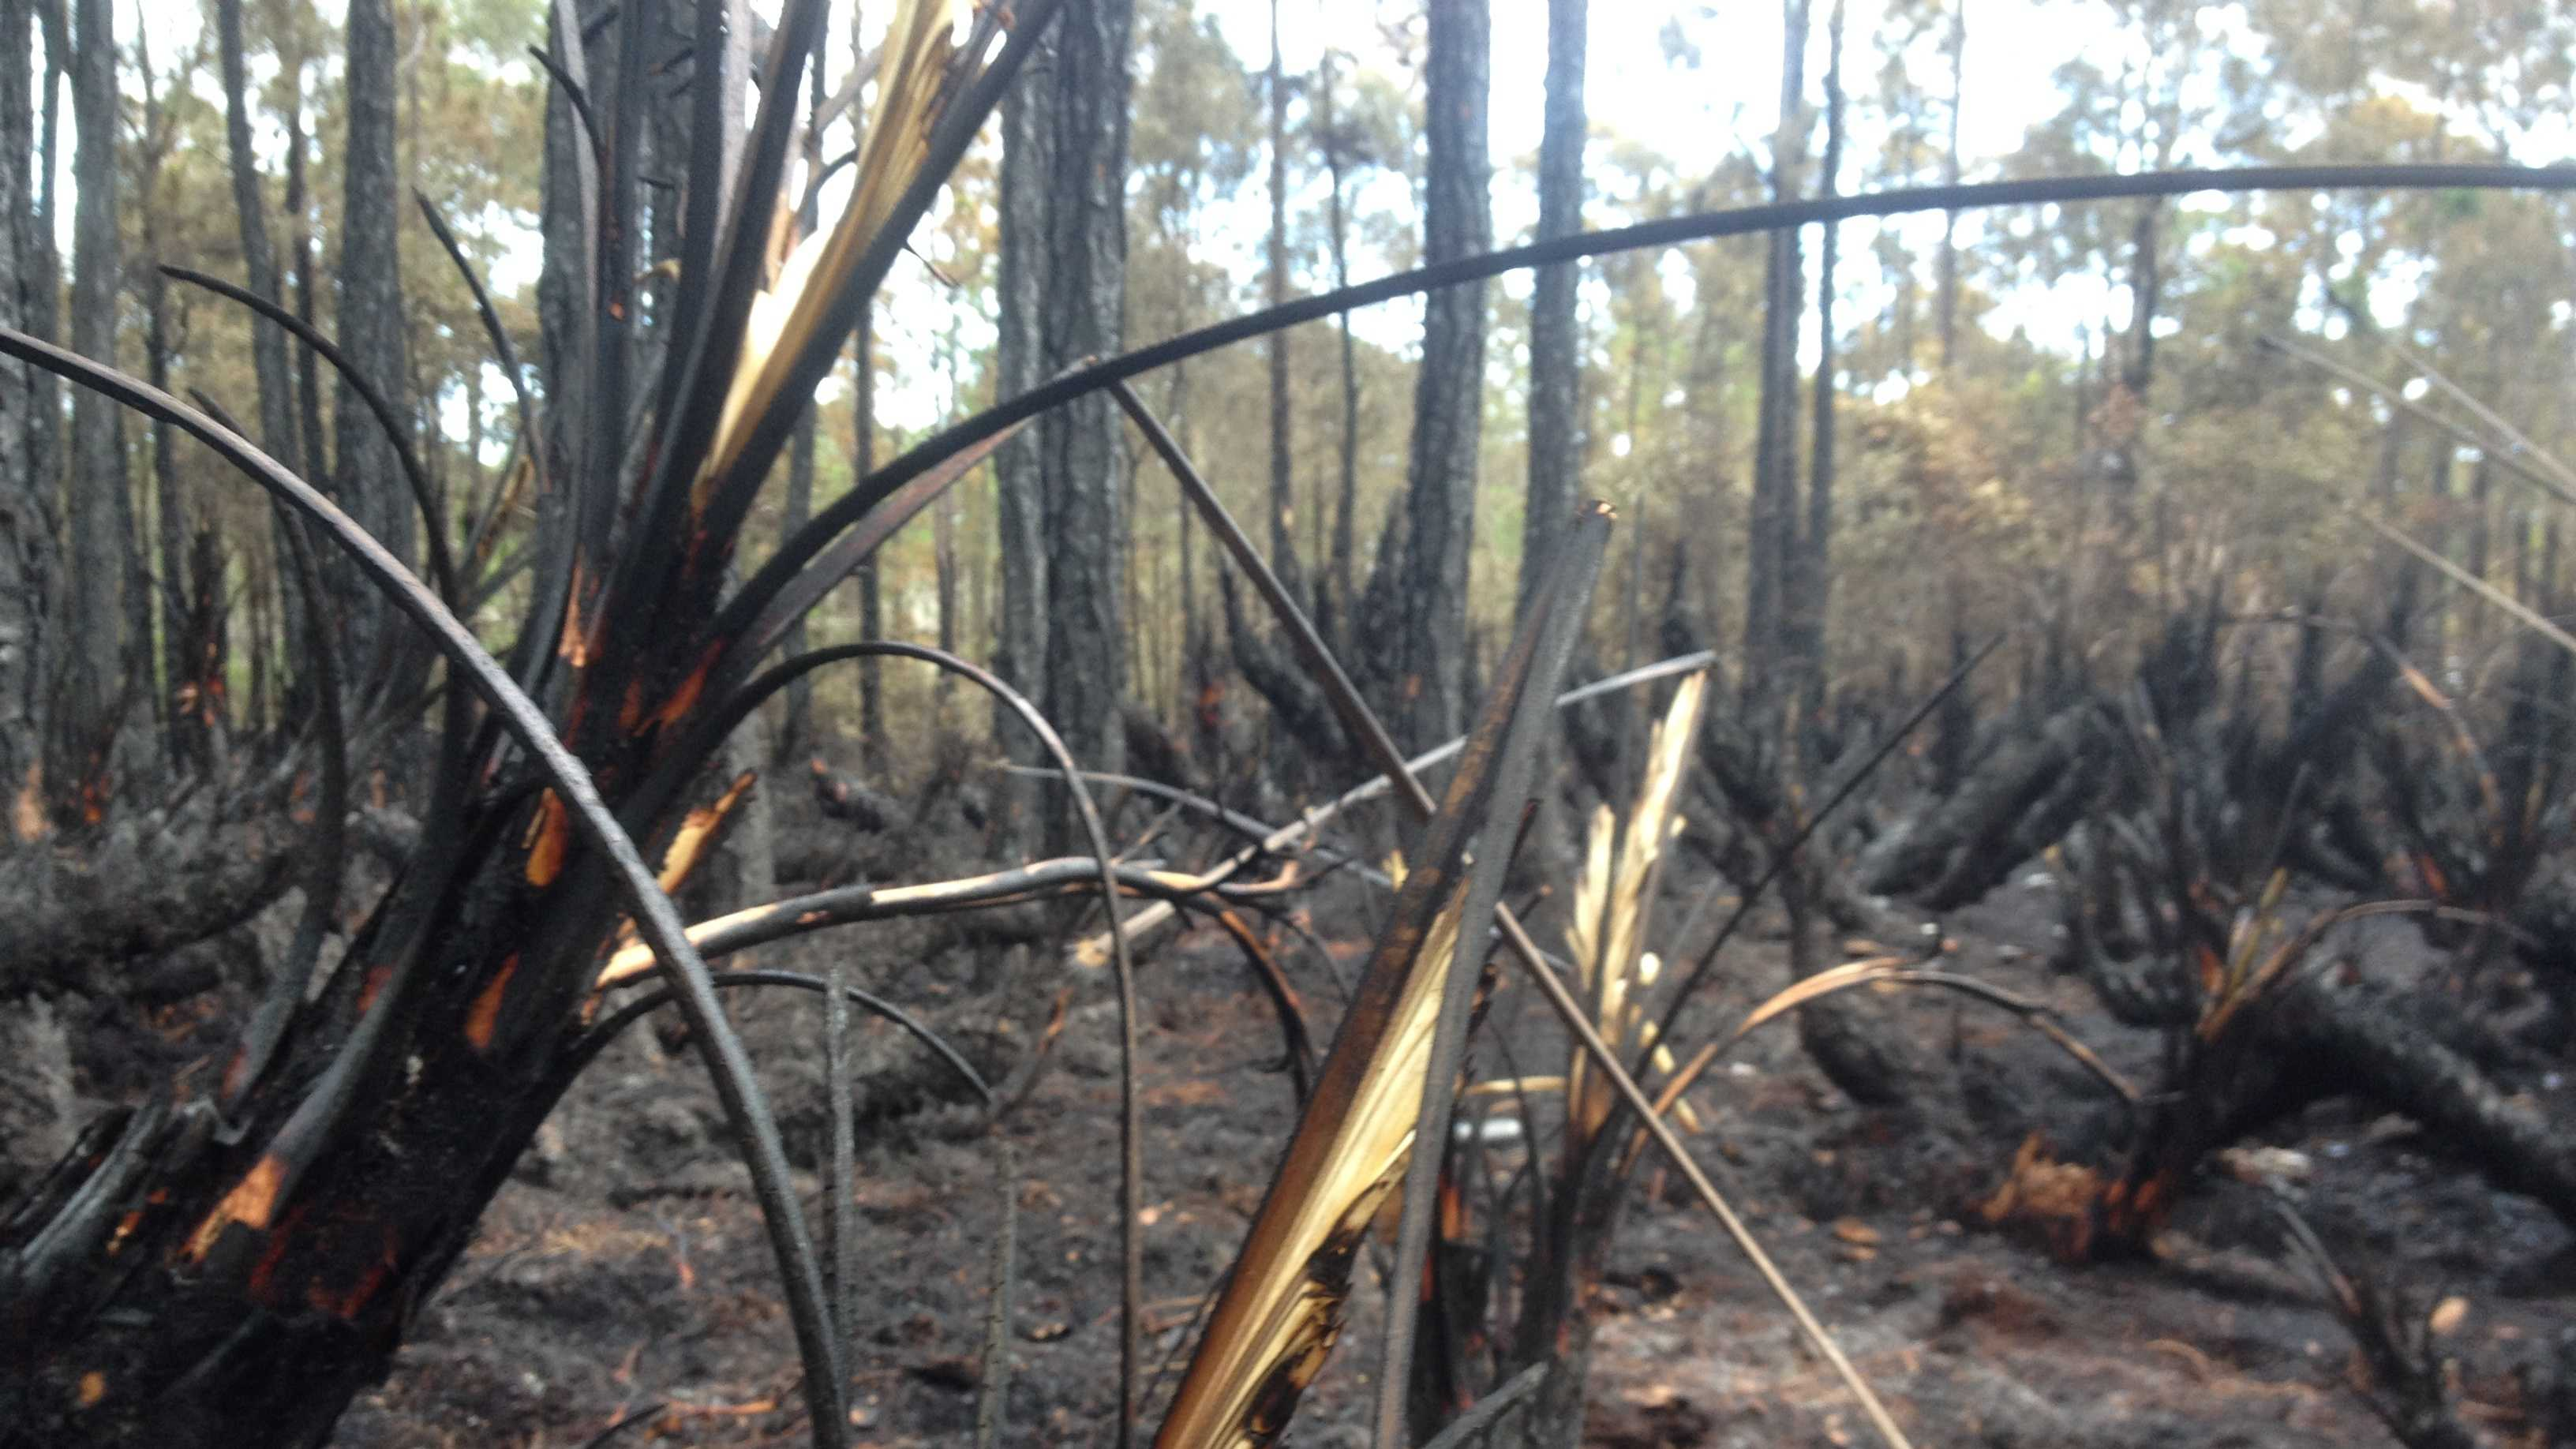 Firefighters are remaining extremely cautious after Wednesday's brush fire nearIndrio Road in Fort Pierce, the site of a brush fire also in the same area last year.